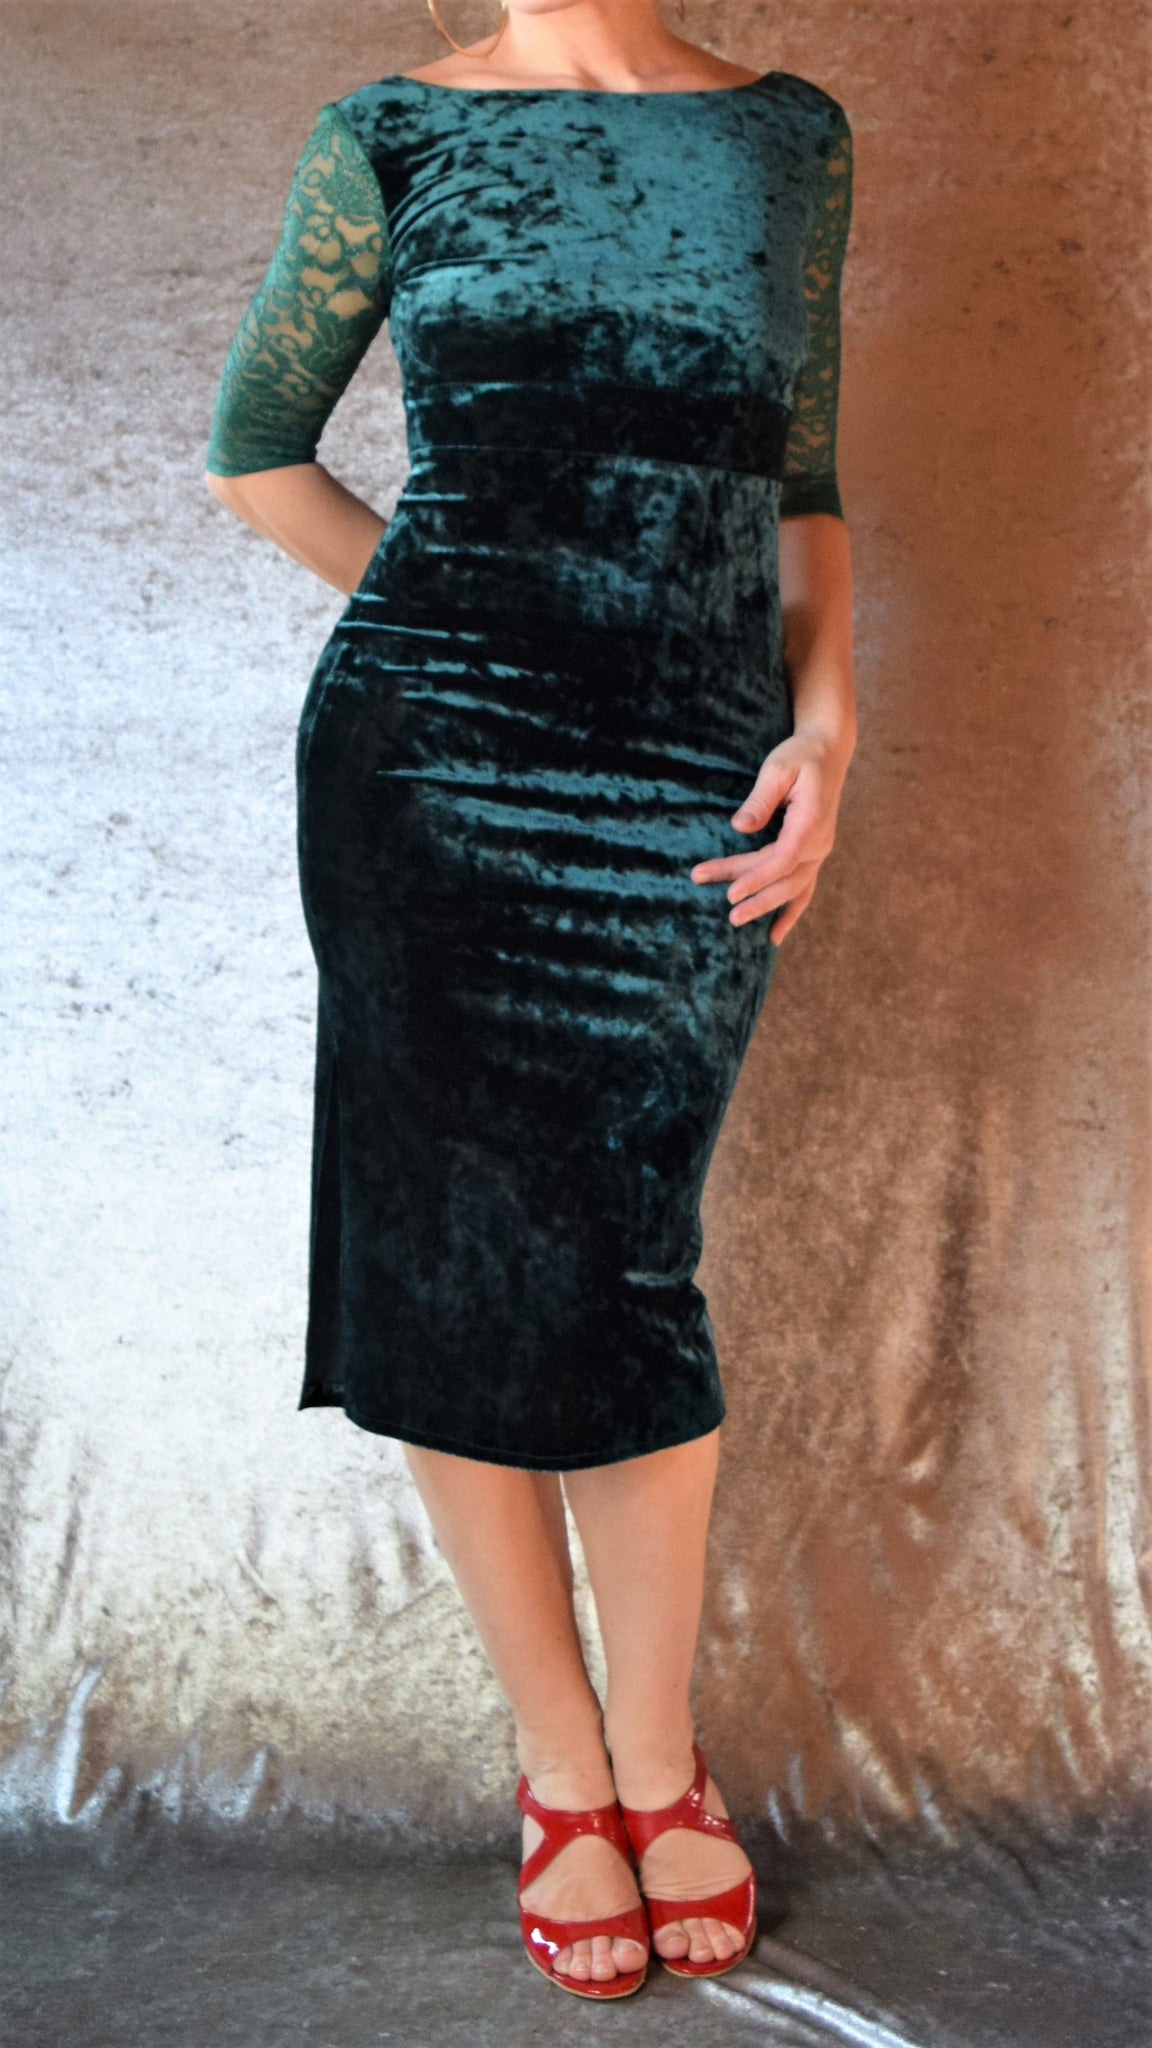 Crushed Velvet High Neckline Dress with Side Slit and Lace Sleeves - Choose Your Size and Color